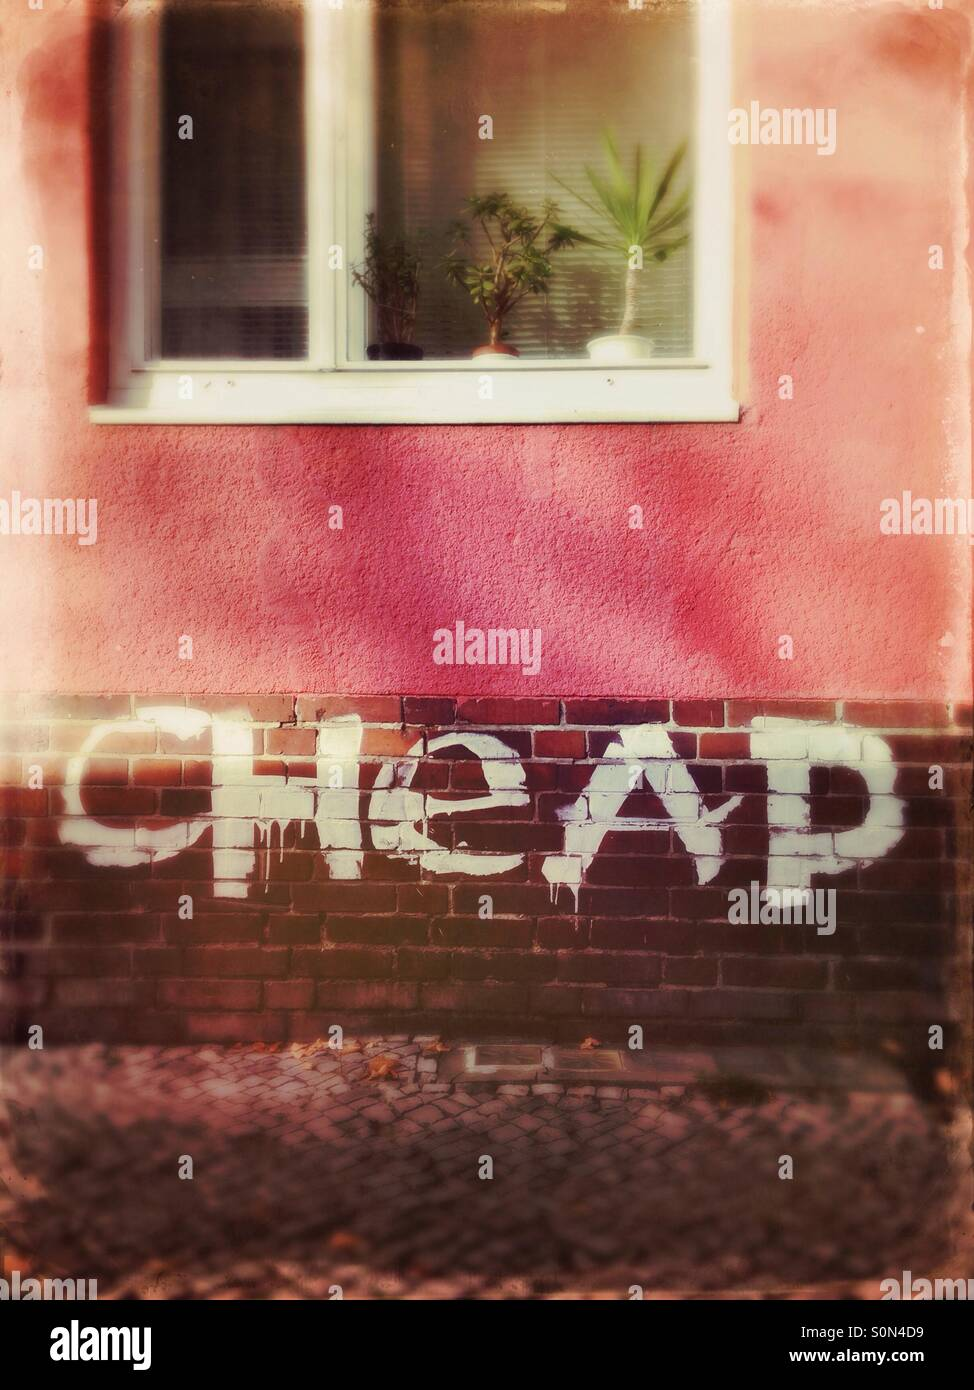 Cheap graffiti on a house in the neighbourhood Schillerkiez in Neukoelln, Berlin, Germany - Stock Image